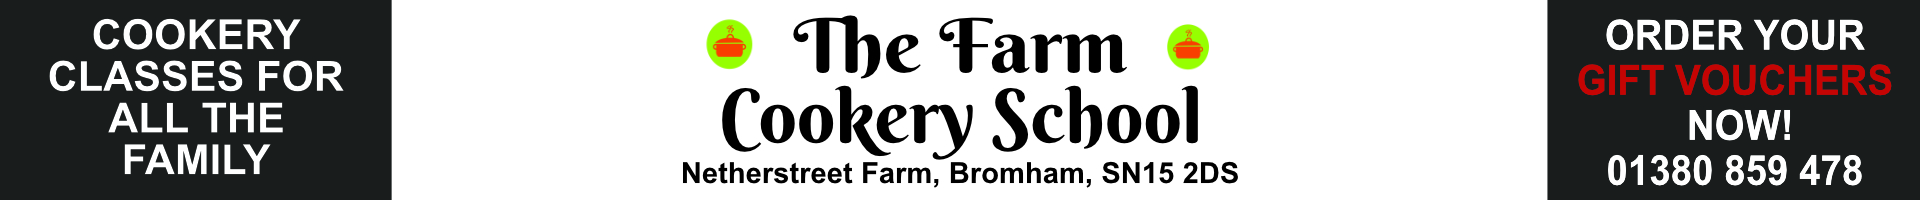 The Farm Cookery School Dec2019